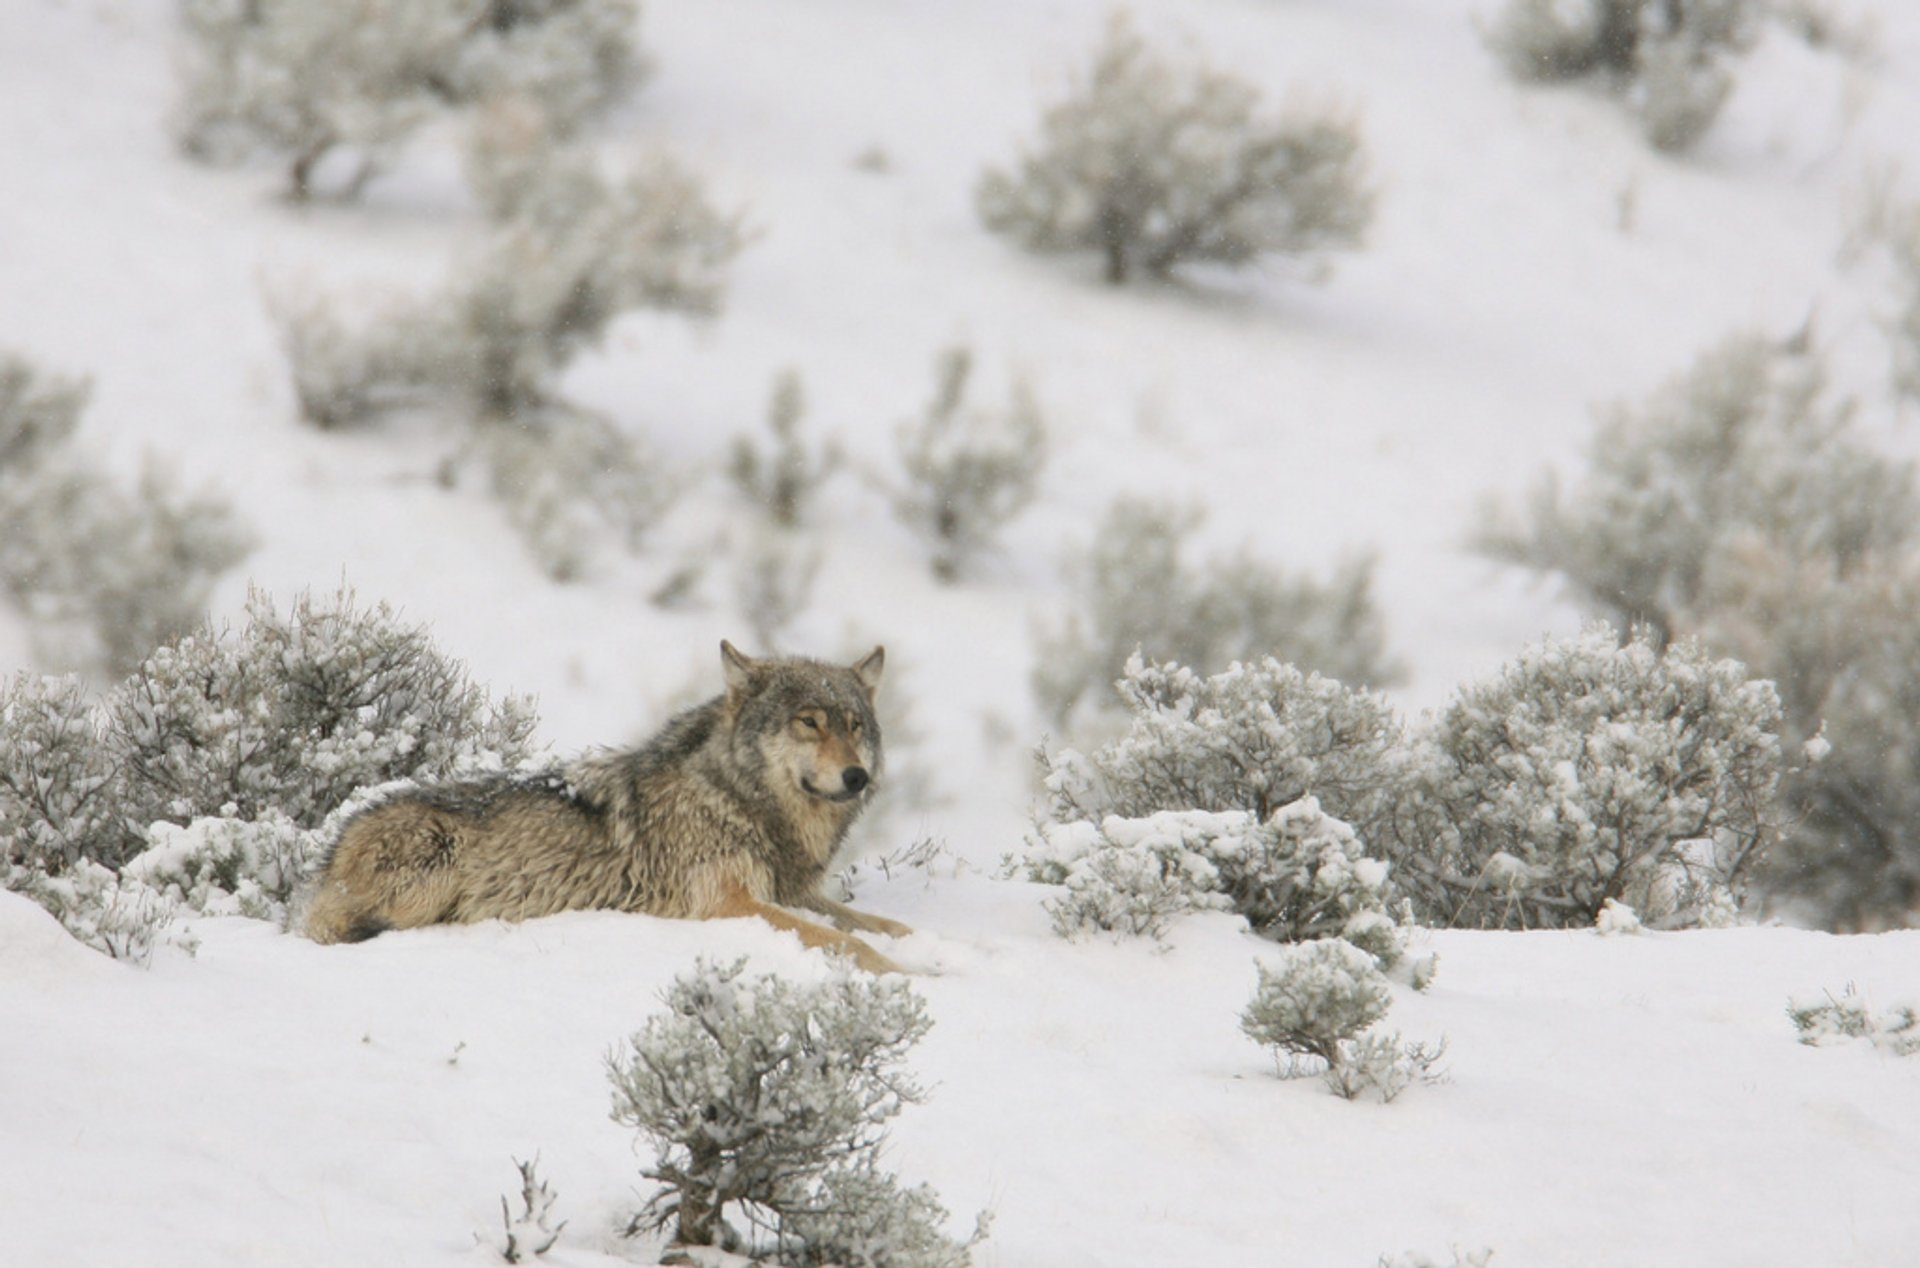 Wolves in Yellowstone National Park - Best Season 2019